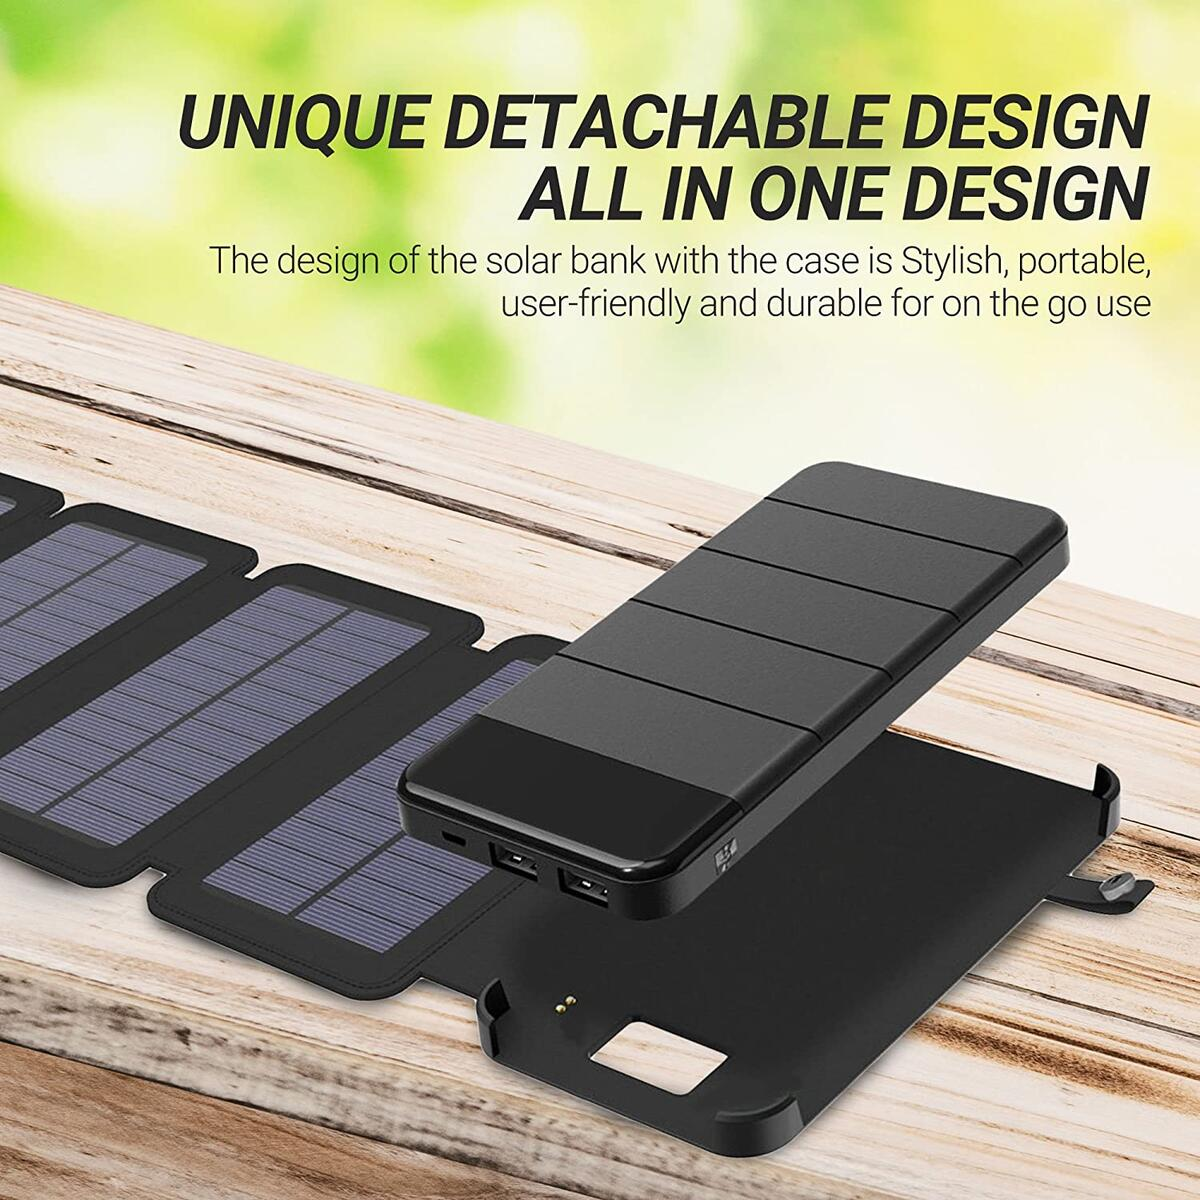 Solar Phone Charger 10.000mAh Power Bank - Portable Smartphone & iPhone Battery + Emergency Flashlight – (2) USB Ports + (4) Foldable Solar Panels - Fast Charging Smart IC Technology - Camping, Hiking